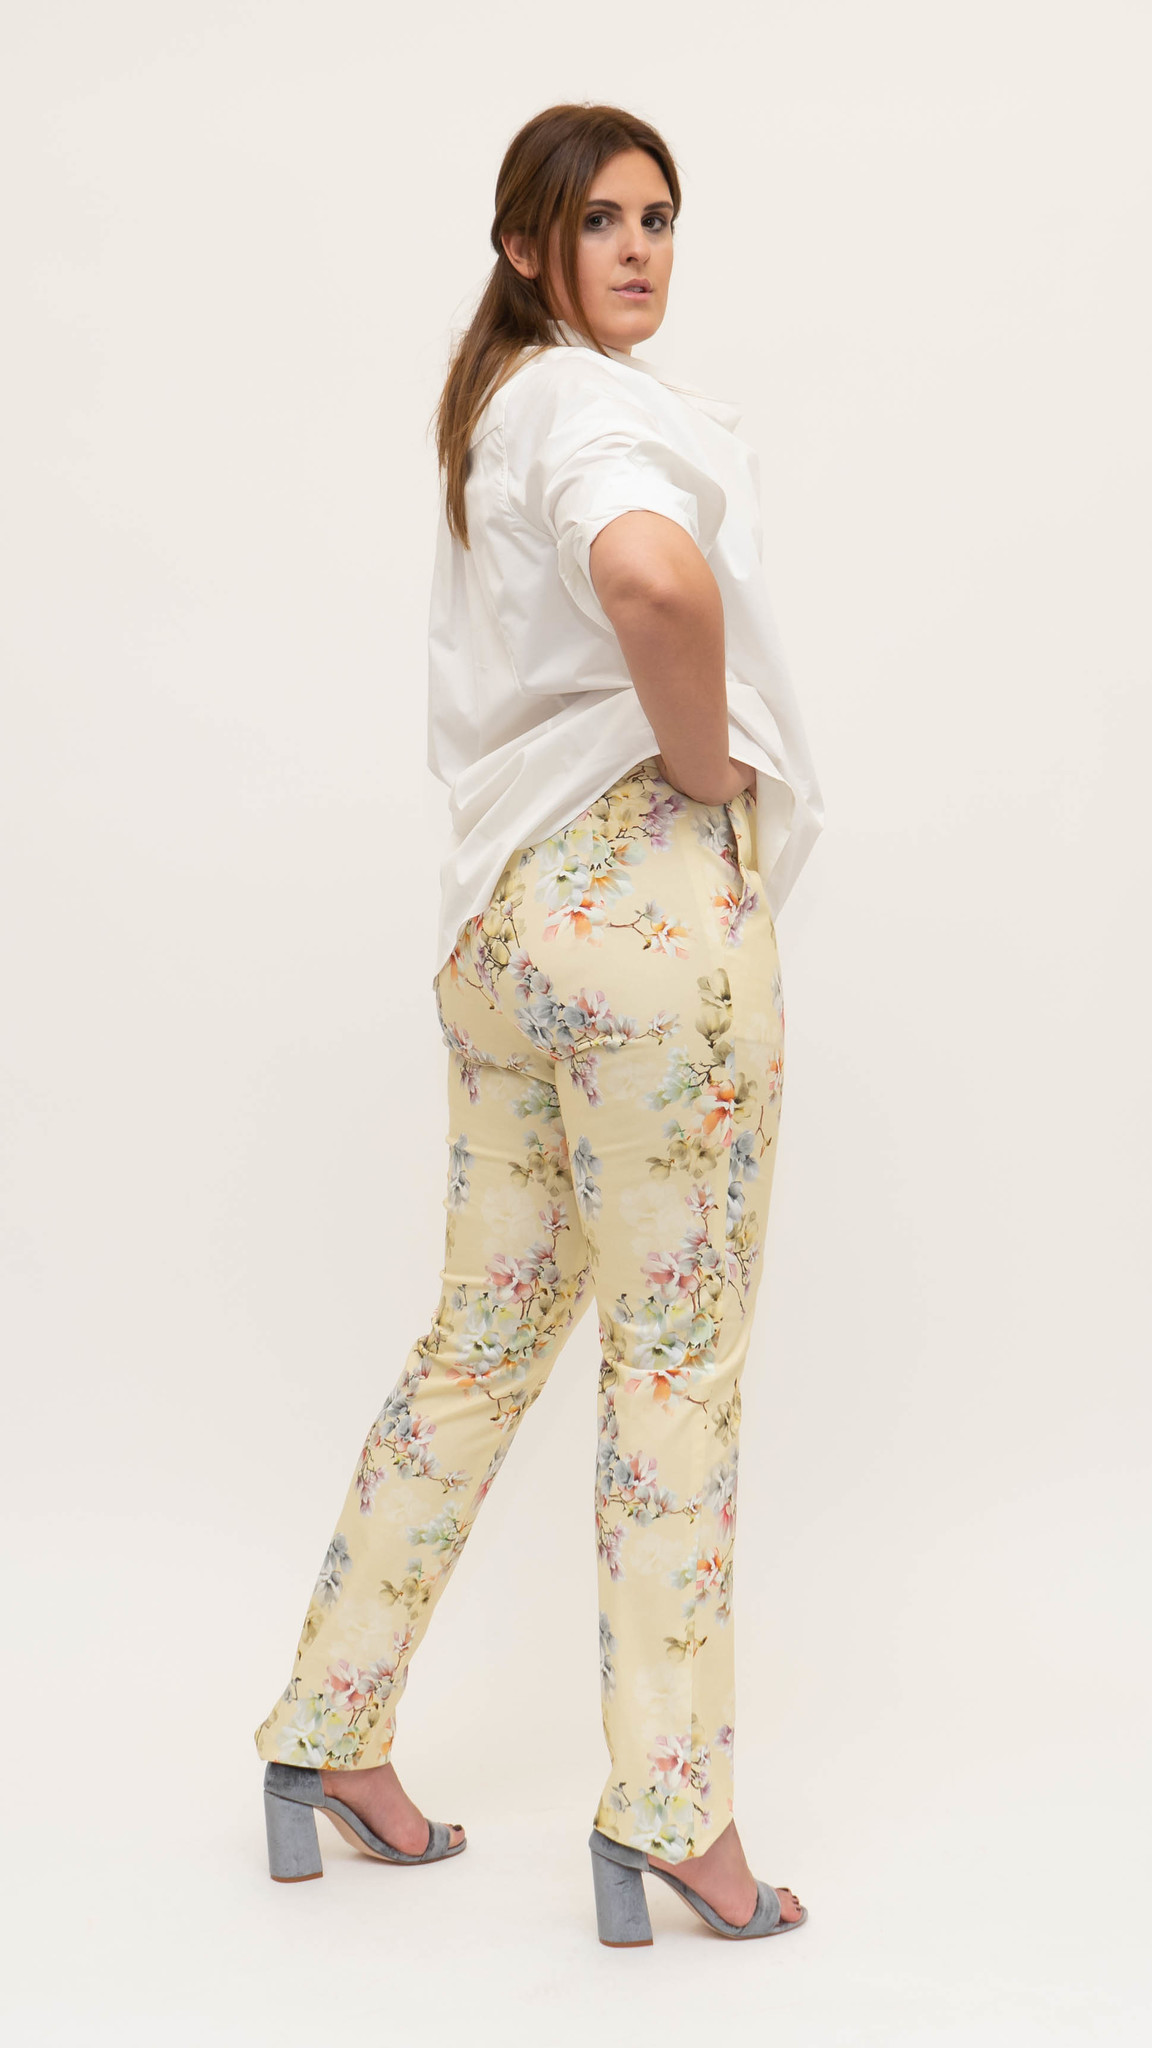 Mag Trouser in Cotton stretch-2